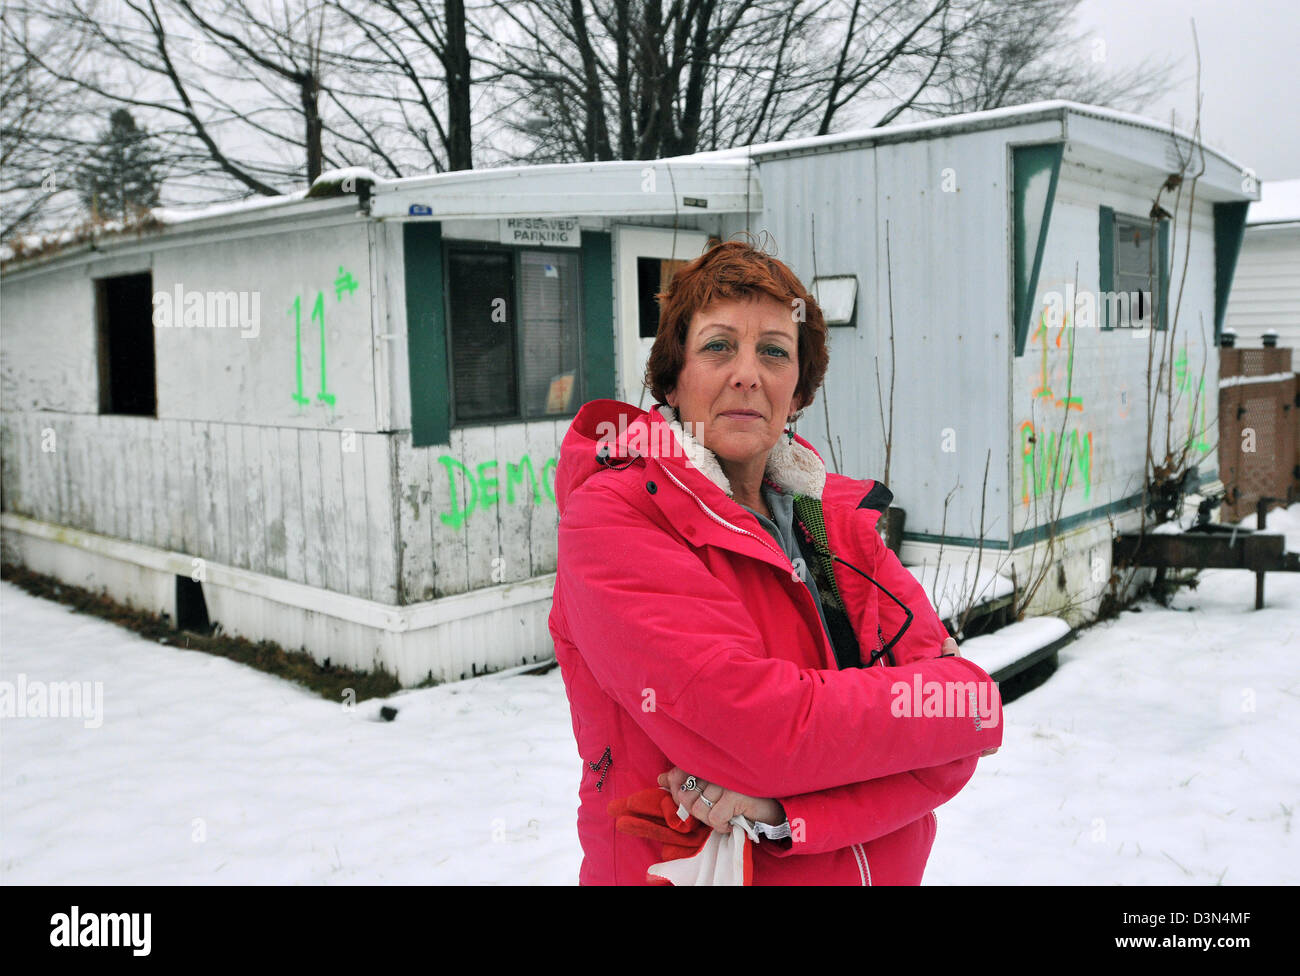 Trailer Park Blight A Woman With Abandoned Mobile Home In